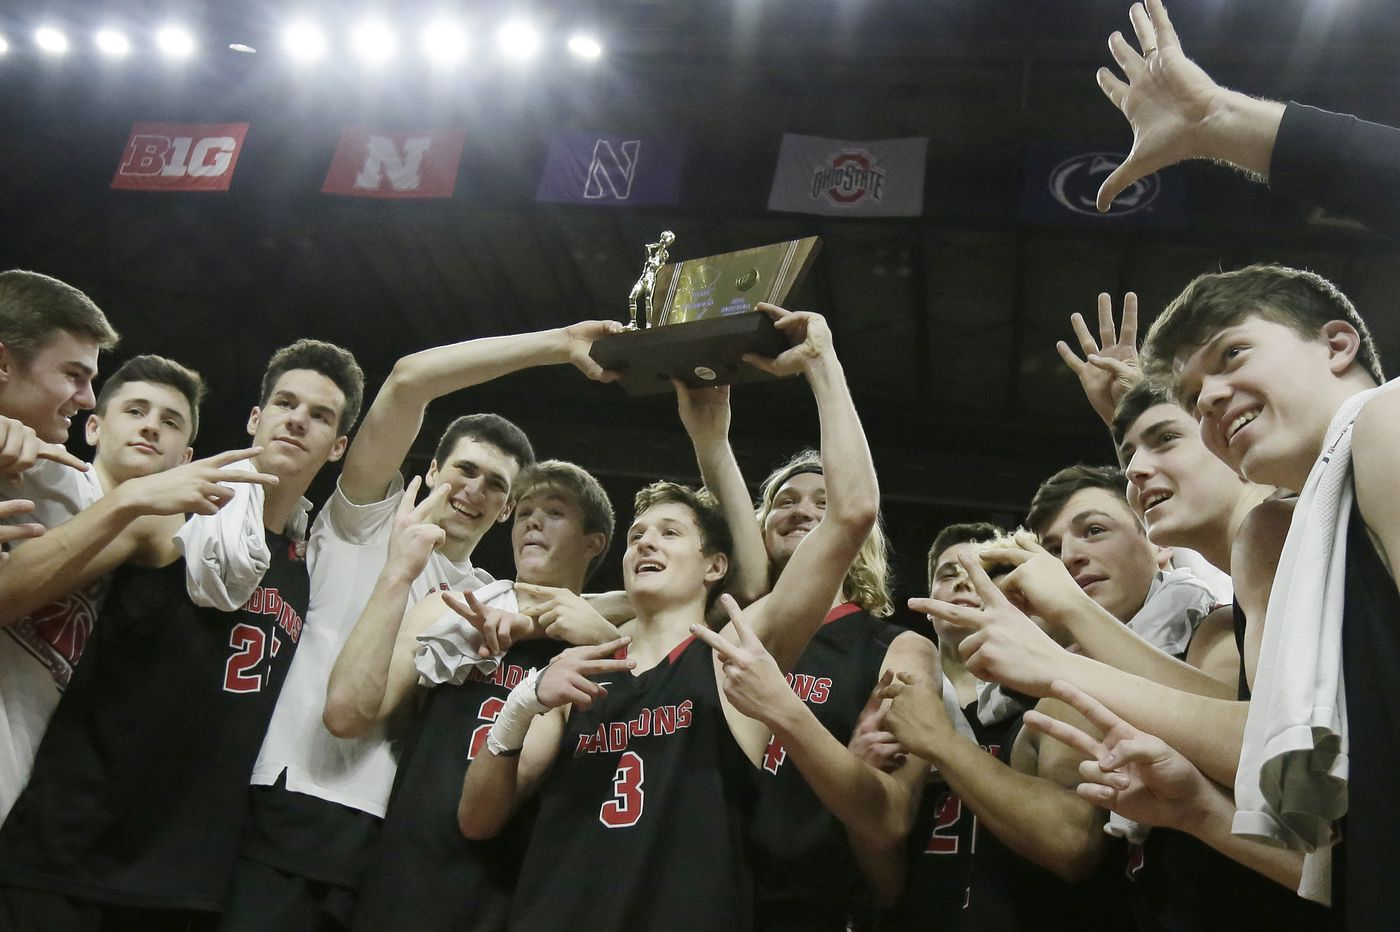 Mike DePersia powers Haddonfield to another Group 2 state title